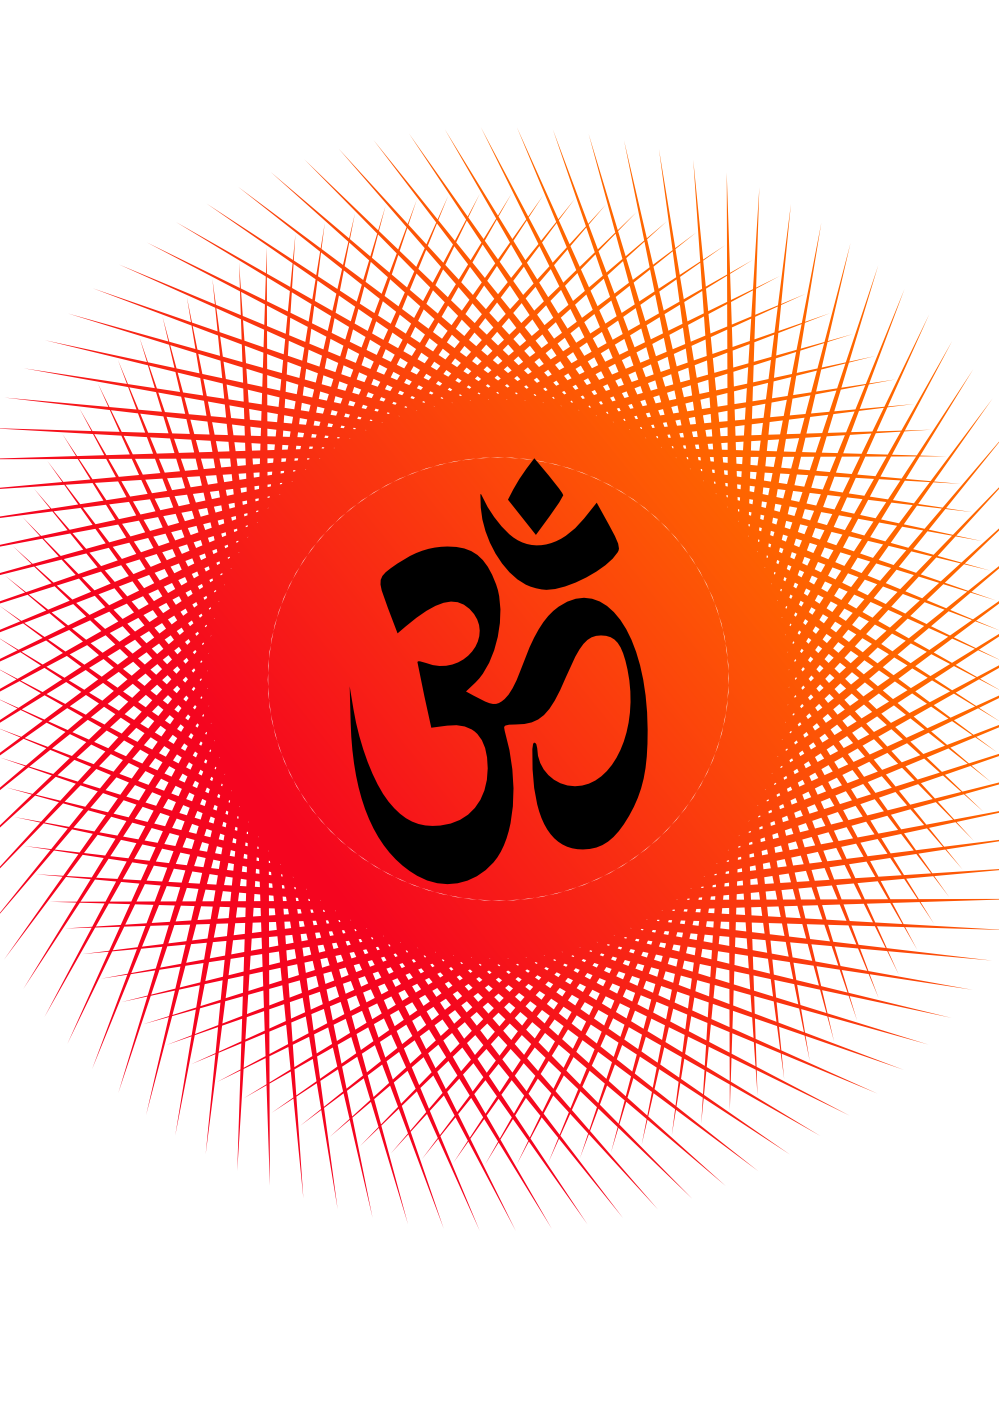 OM is the first mantra in the 4 Vedas and the 108